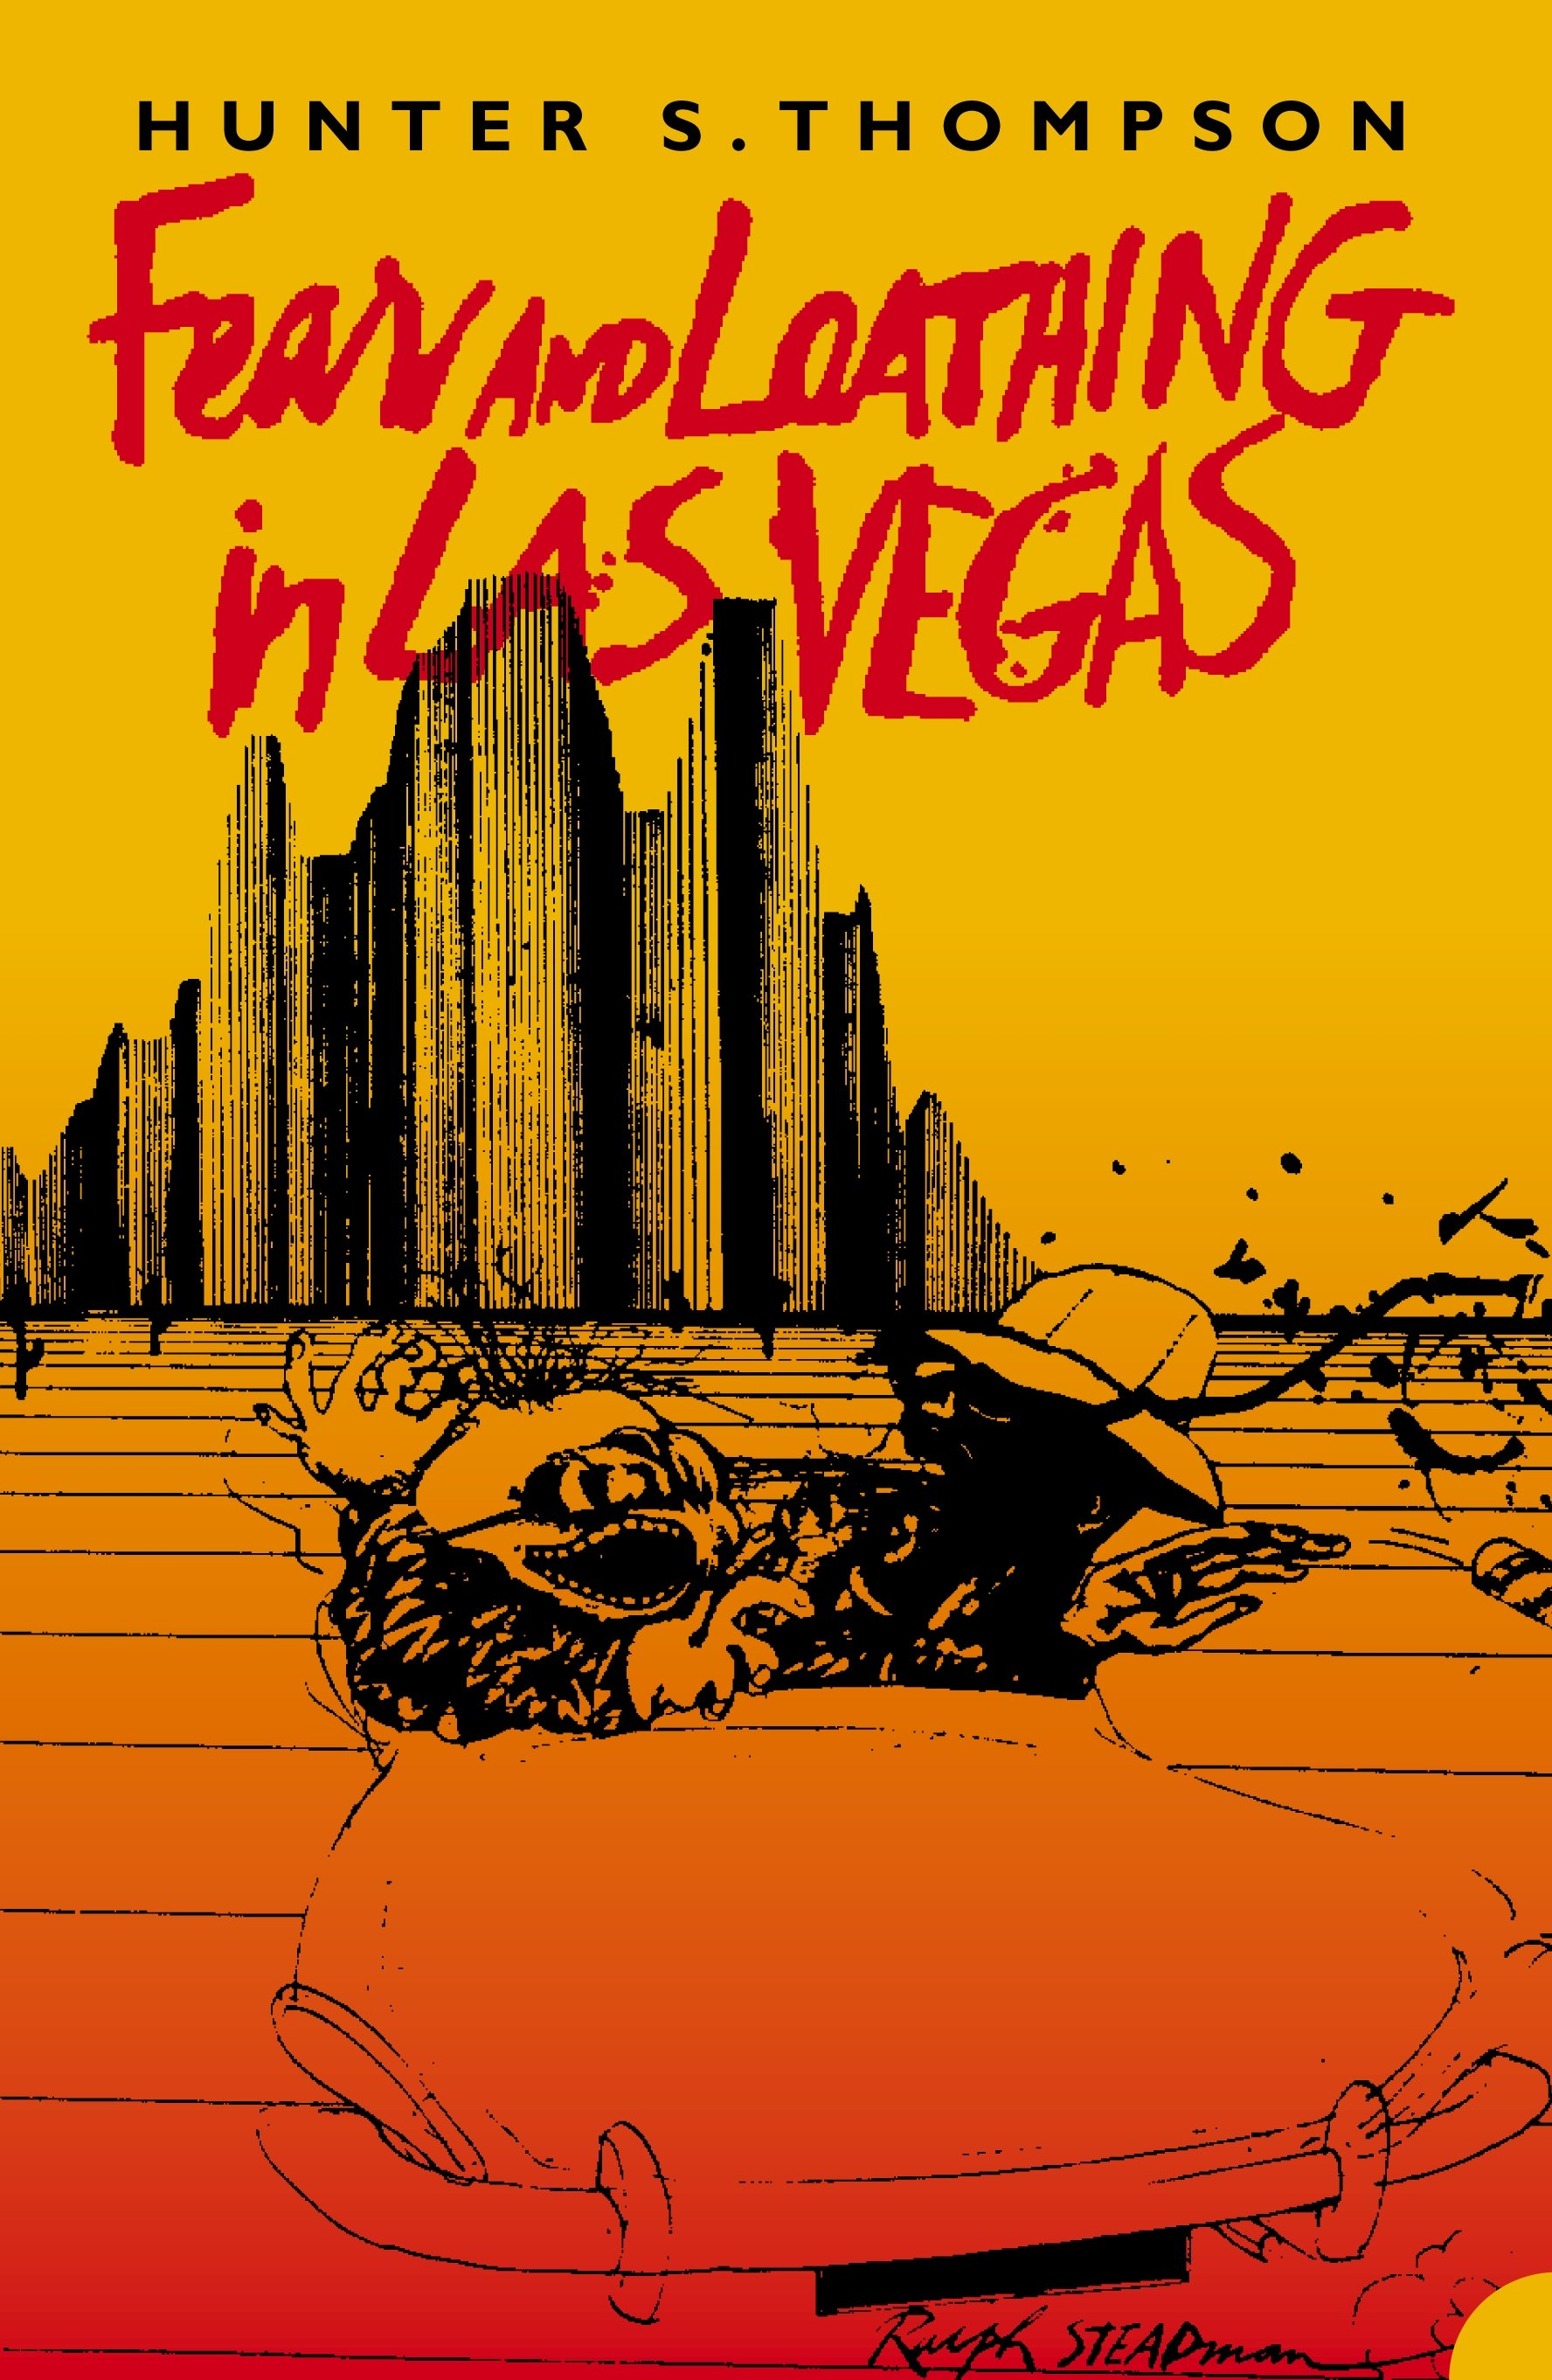 essay fear and loathing in las vegas Arts: film term papers (paper 2918) on fear and loathing in las vegas: the story begins abruptly, as we find our mock heroes out in the desert en route to the savvy resort of las vegas.